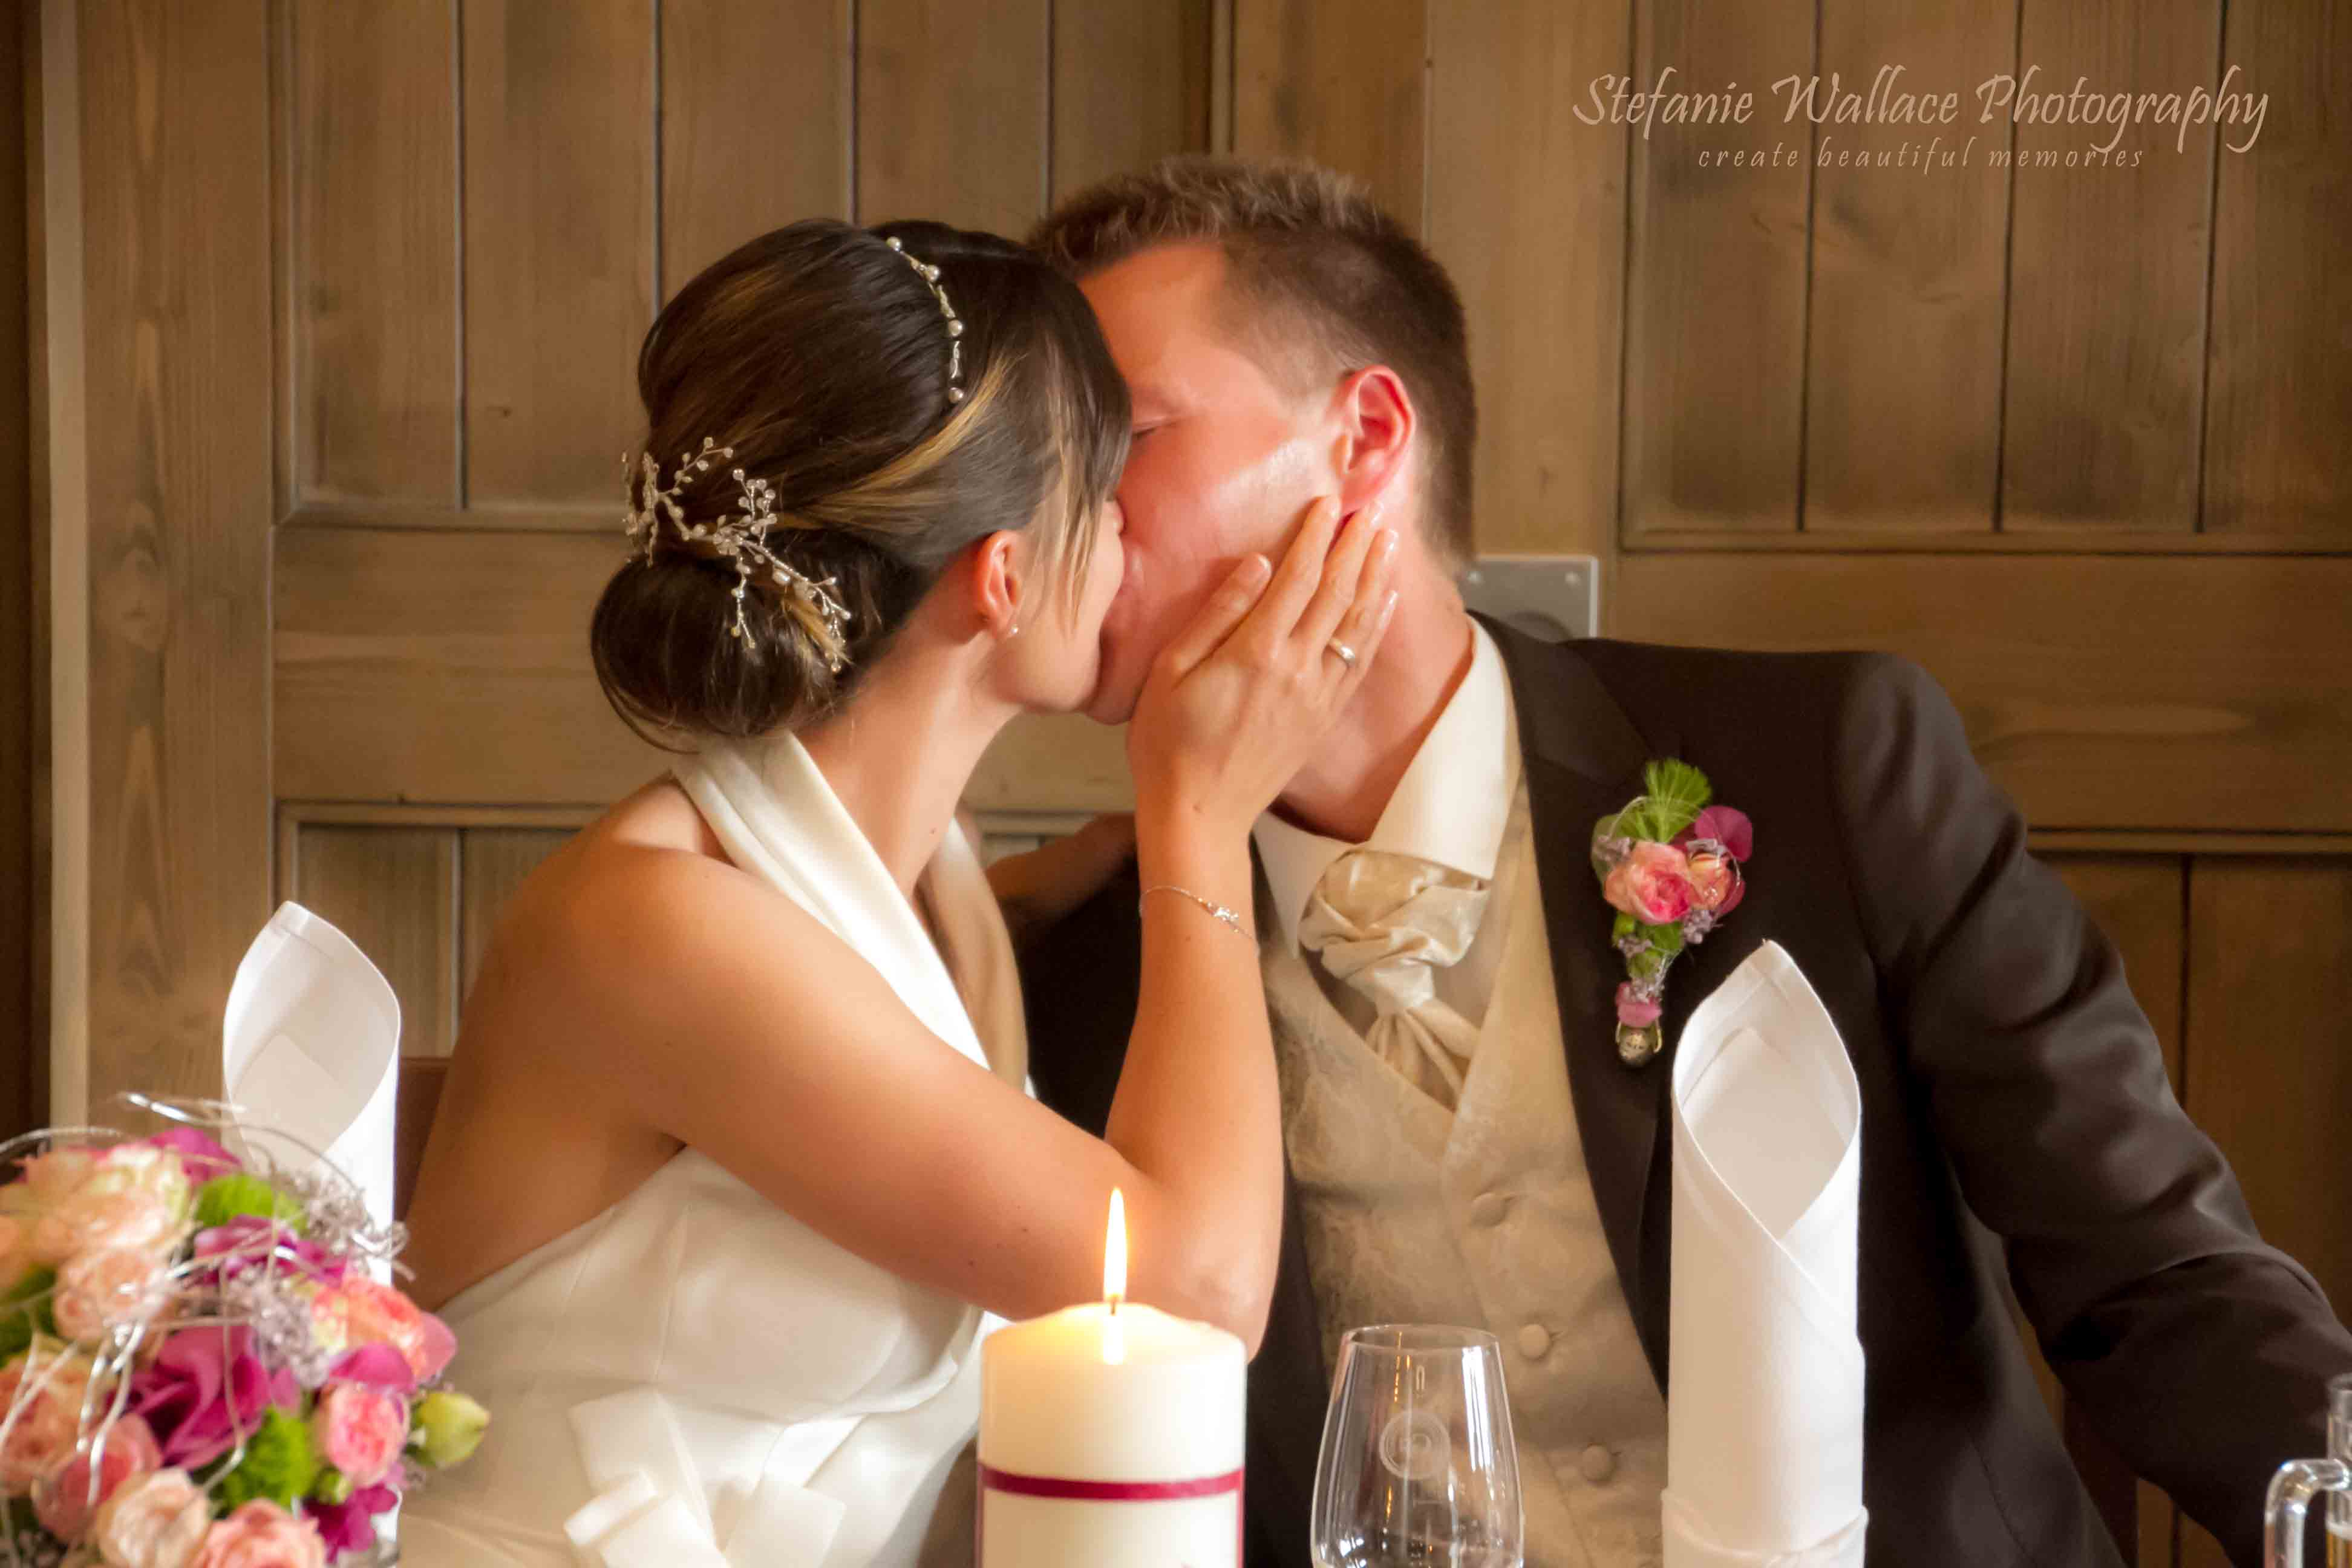 2018 Wedding Couple 82 Stefanie Wallace Photography